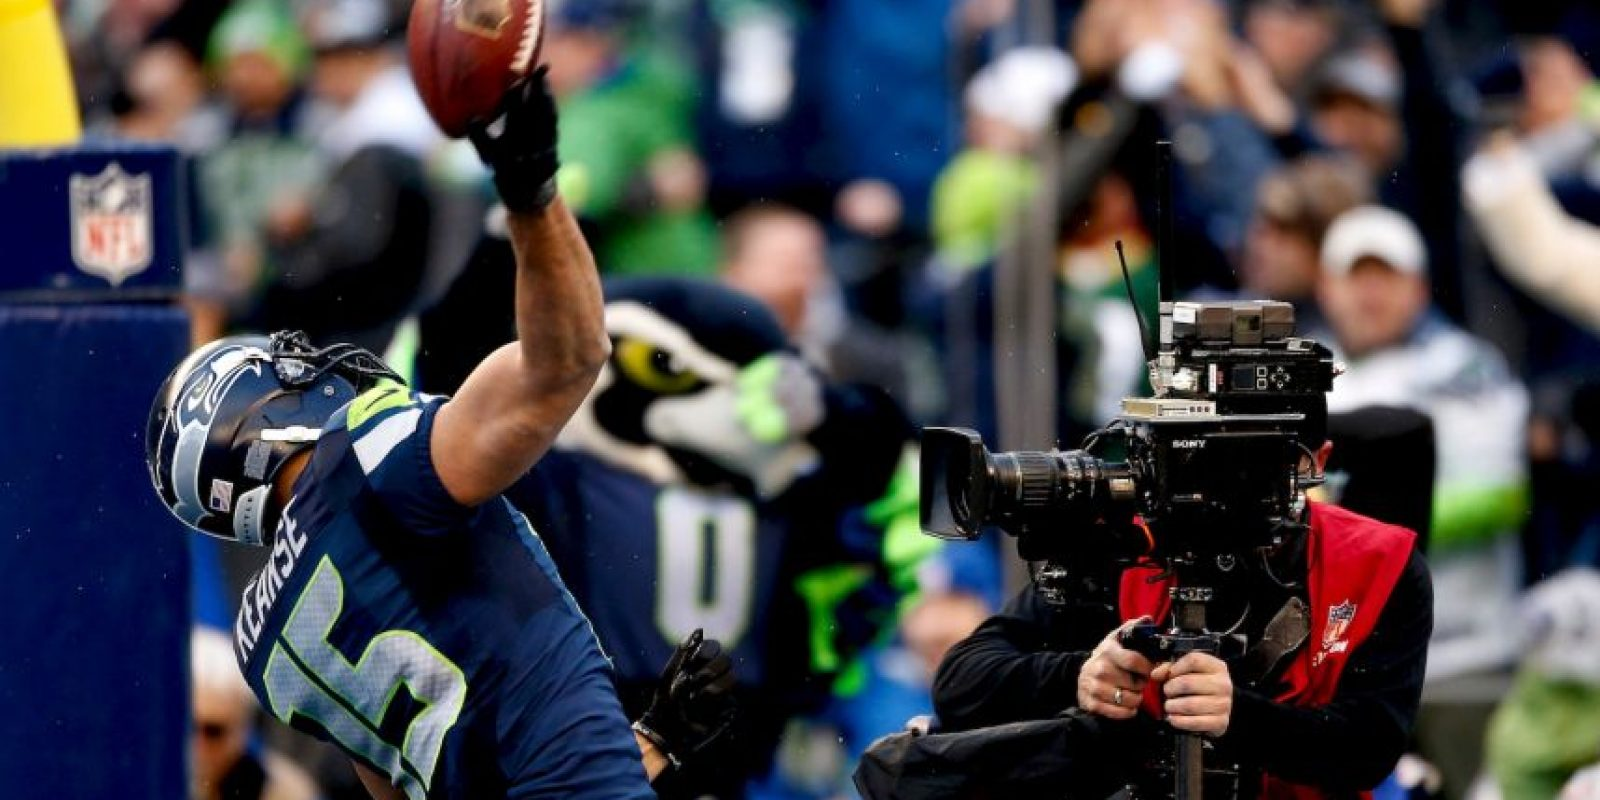 Enfrentarán en la final a los Seattle Seahawks Foto: Getty